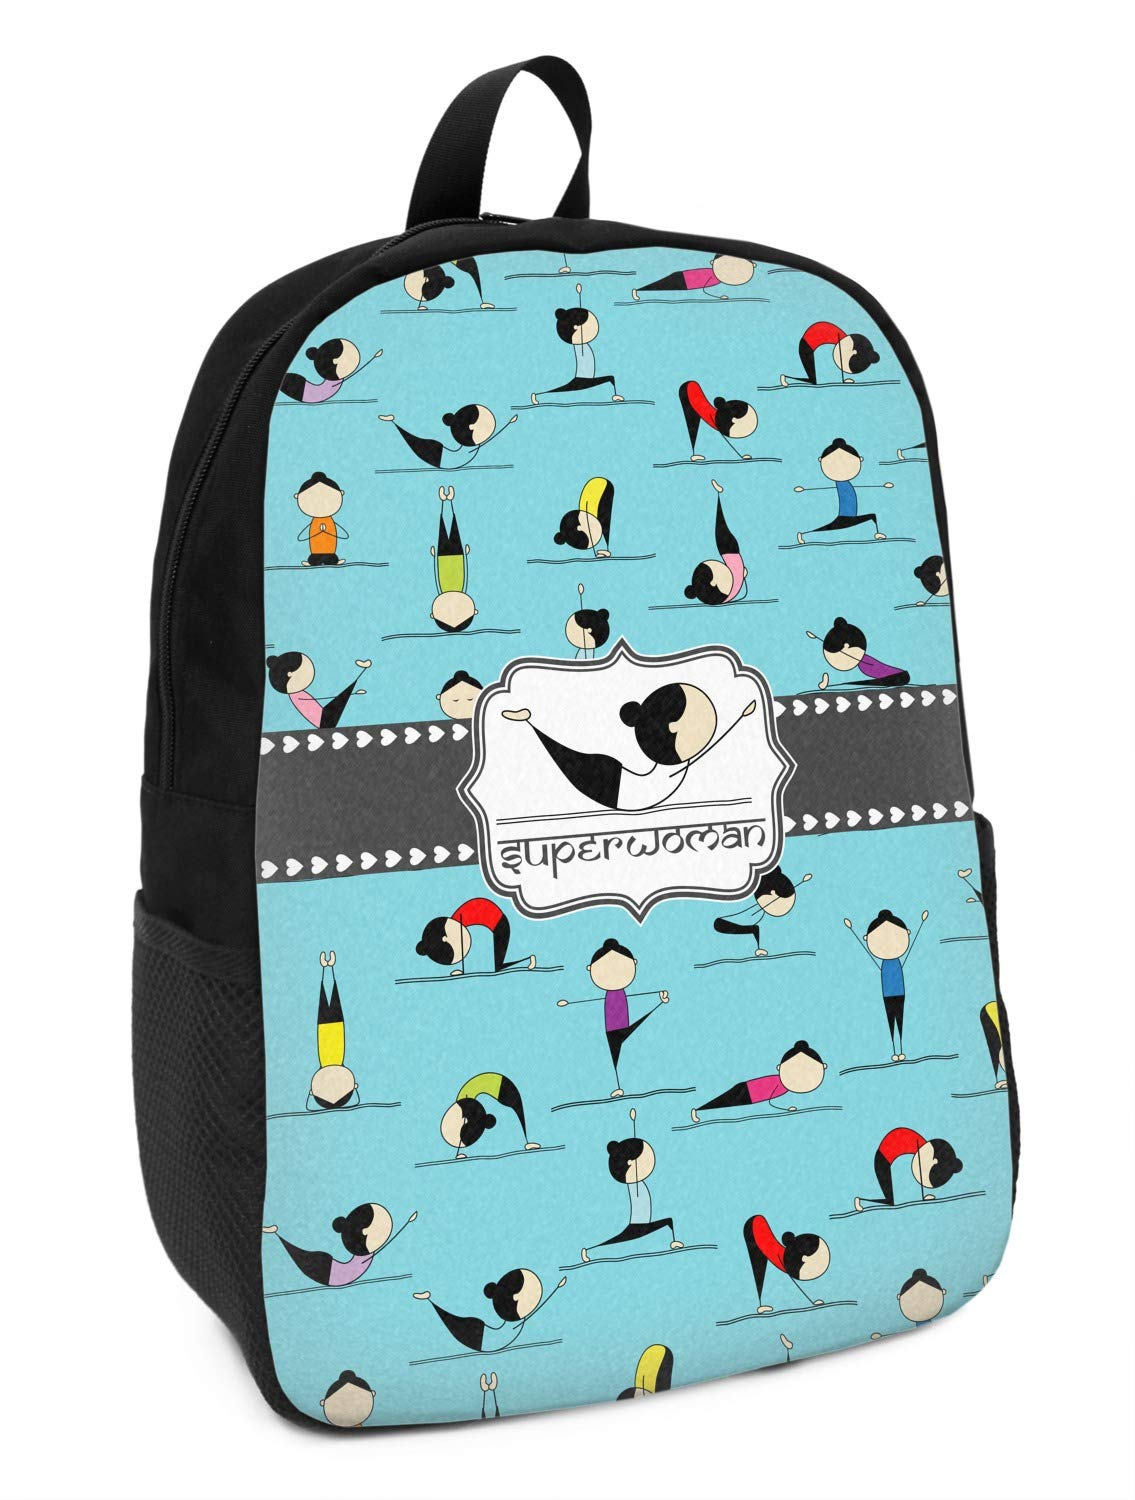 Yoga Poses Kids Backpack Personalized